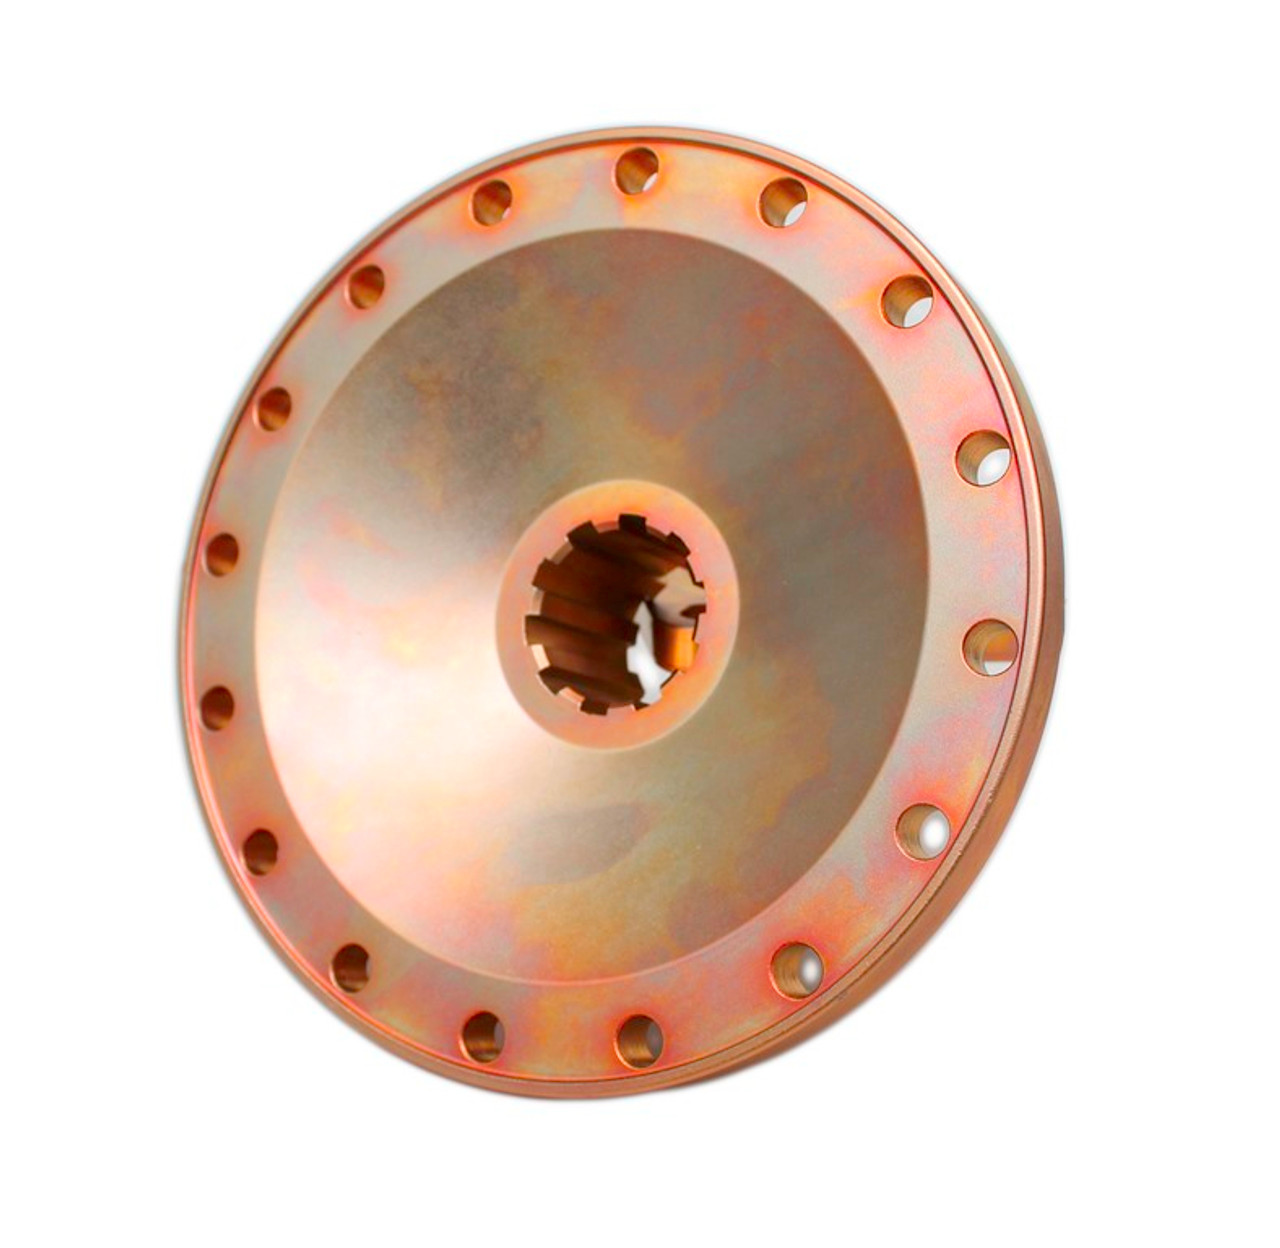 fpcg5 5 ton rated gearbox flange